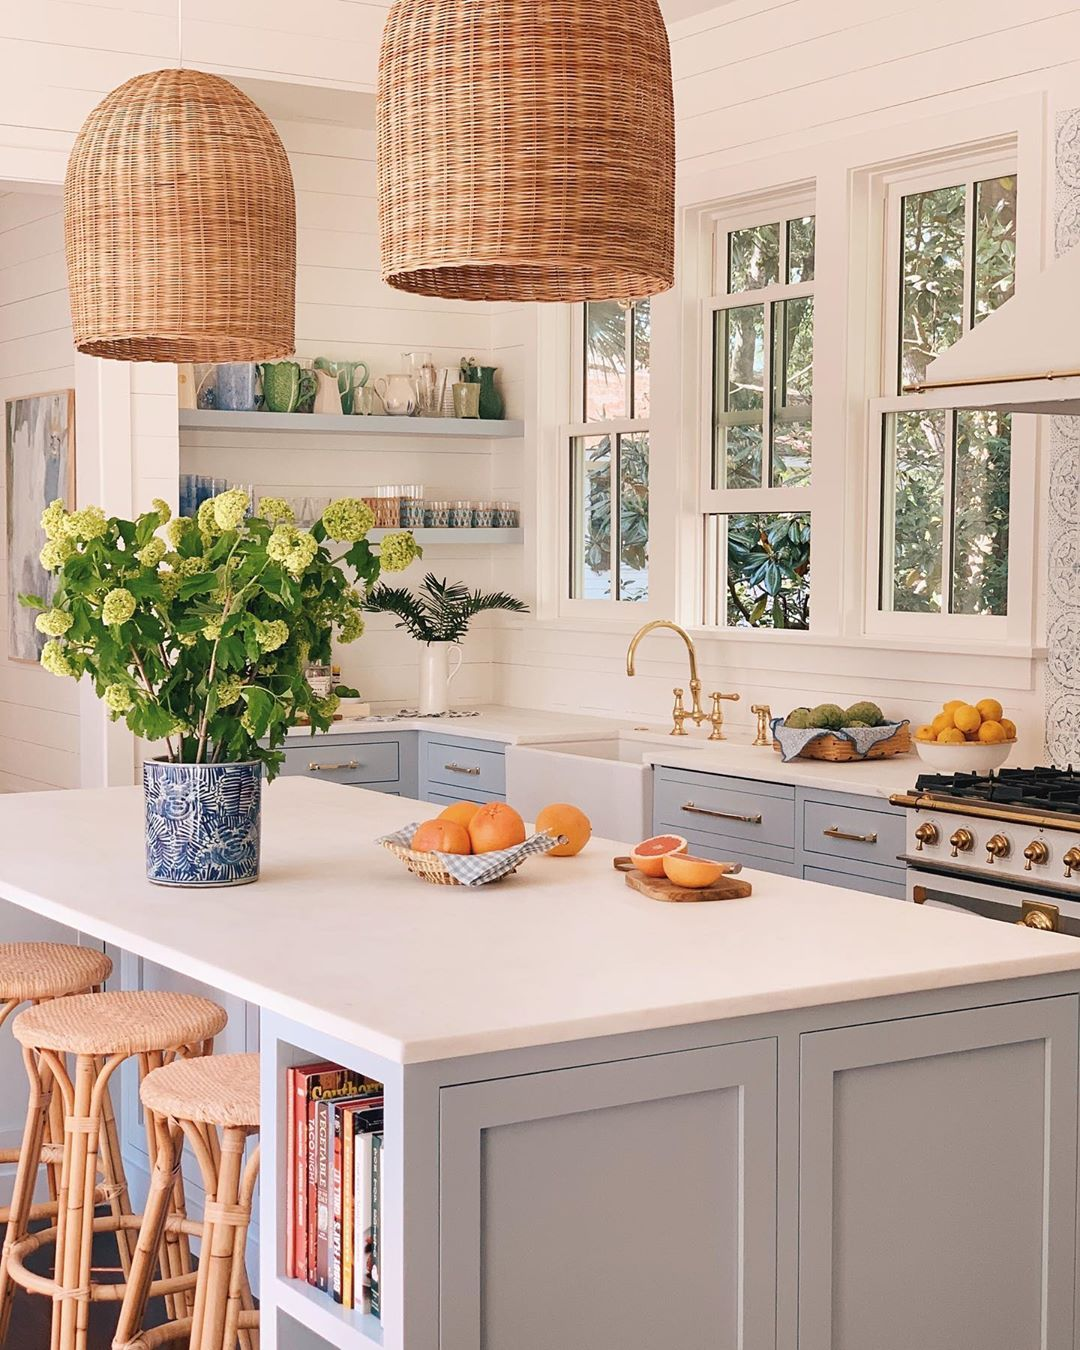 Julia Engel Gal Meets Glam On Instagram First Friday Home In What Feels Like Months Feel So Good Athom Home Kitchens Home Decor Kitchen Kitchen Interior